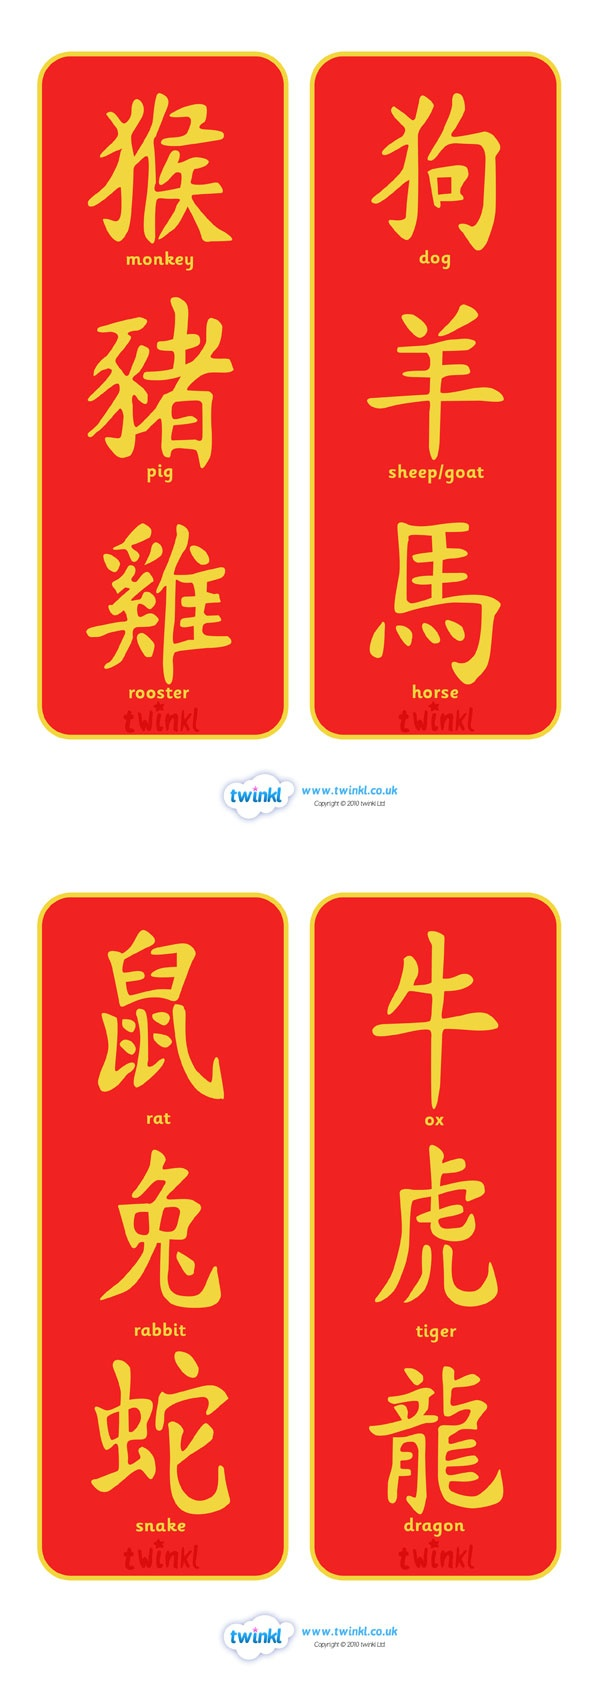 Modern chinese new year table setting - Chinese New Year Decorative Banners Pop Over To Our Site At Www Twinkl